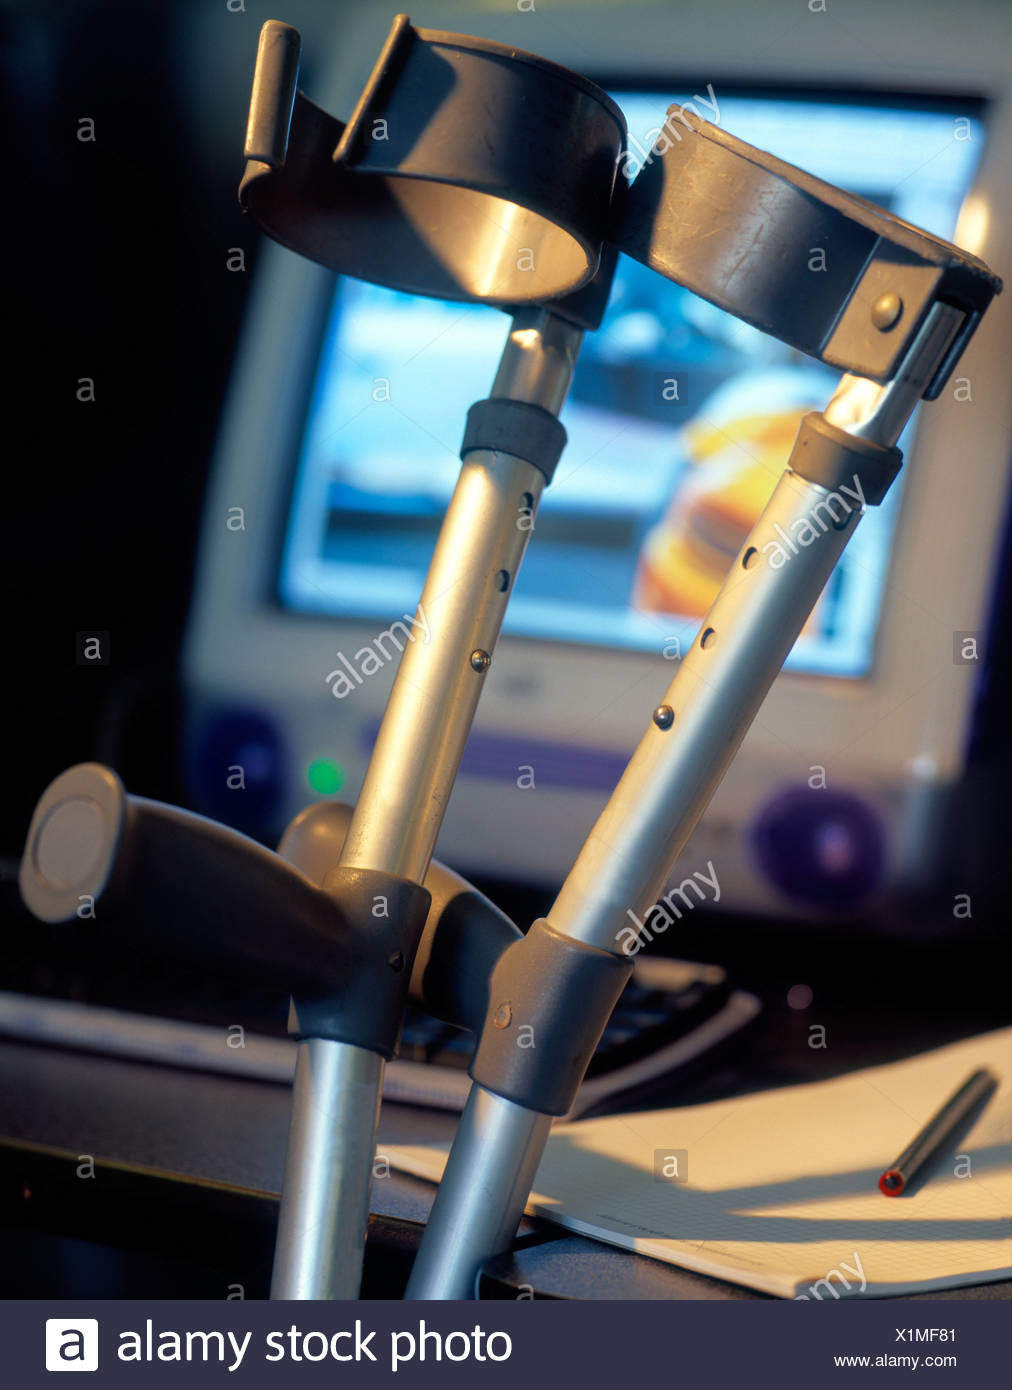 Close-up of crutches leaning against computer table - Stock Image